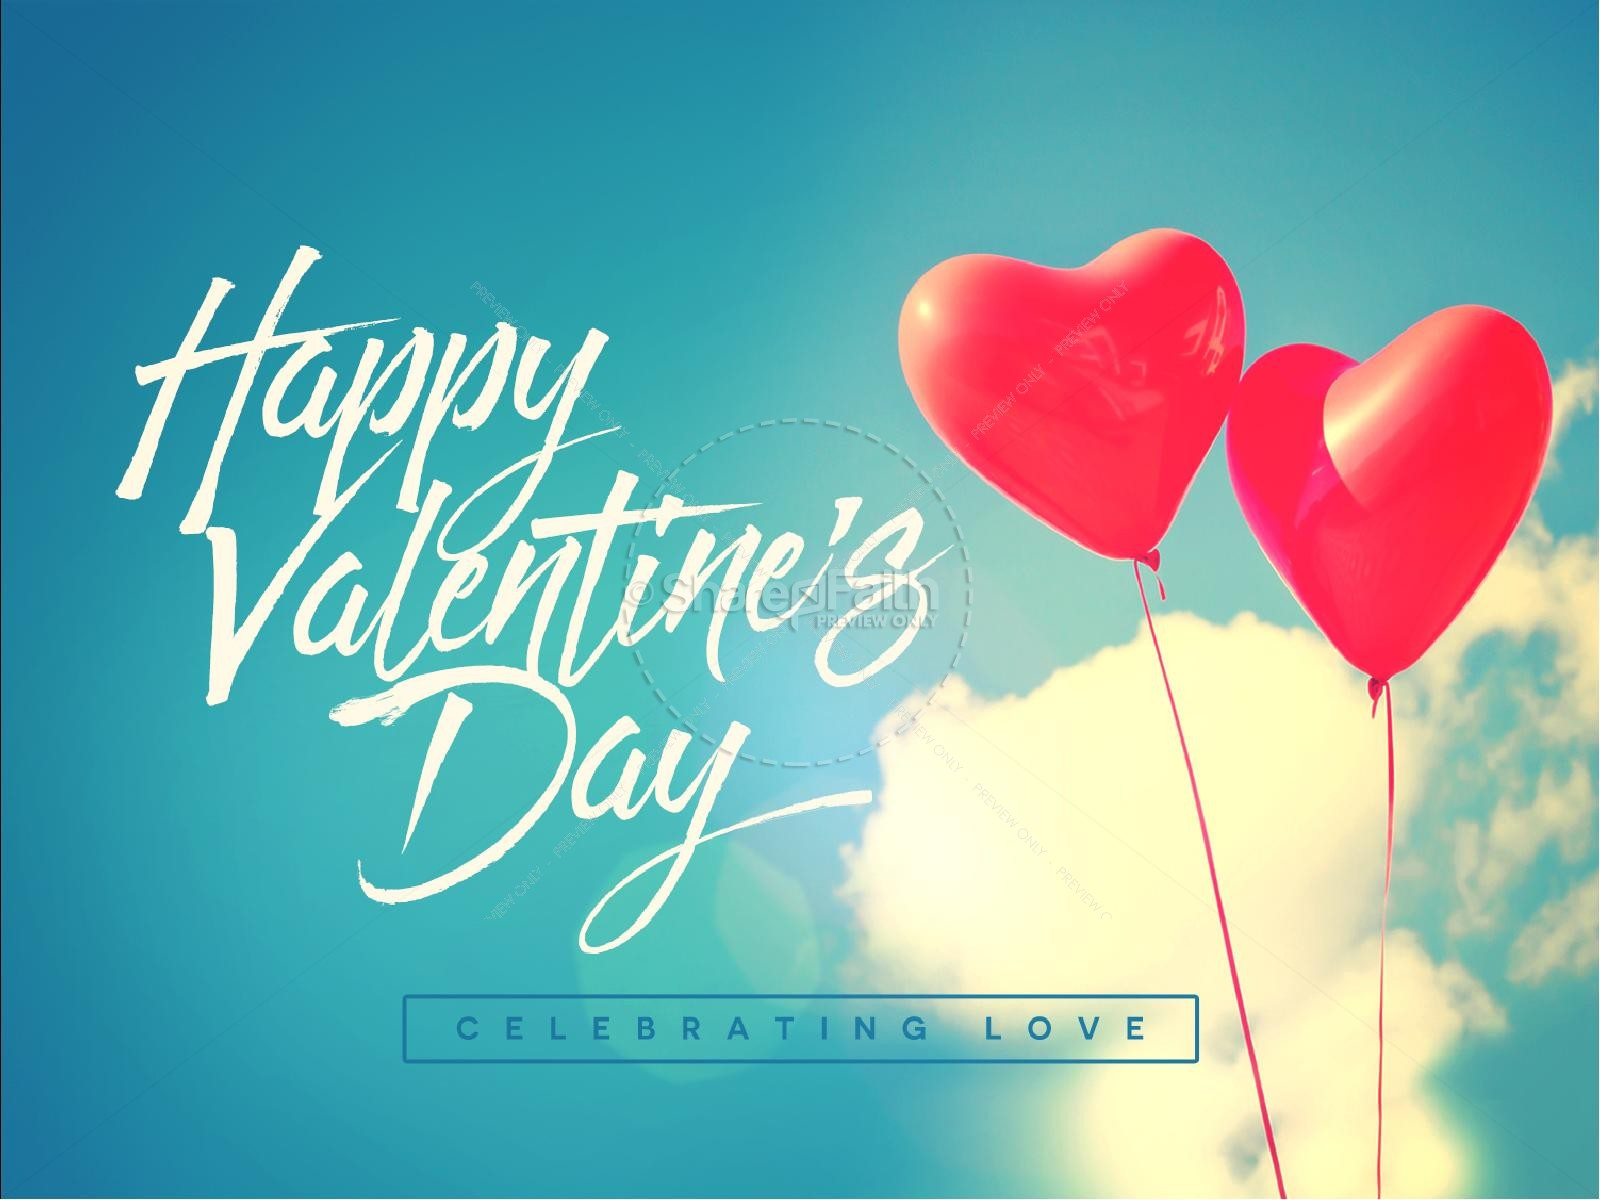 Welcome valentine retreat clipart vector freeuse library Celebrating Love Valentine\'s Day Welcome Video   Church ... vector freeuse library